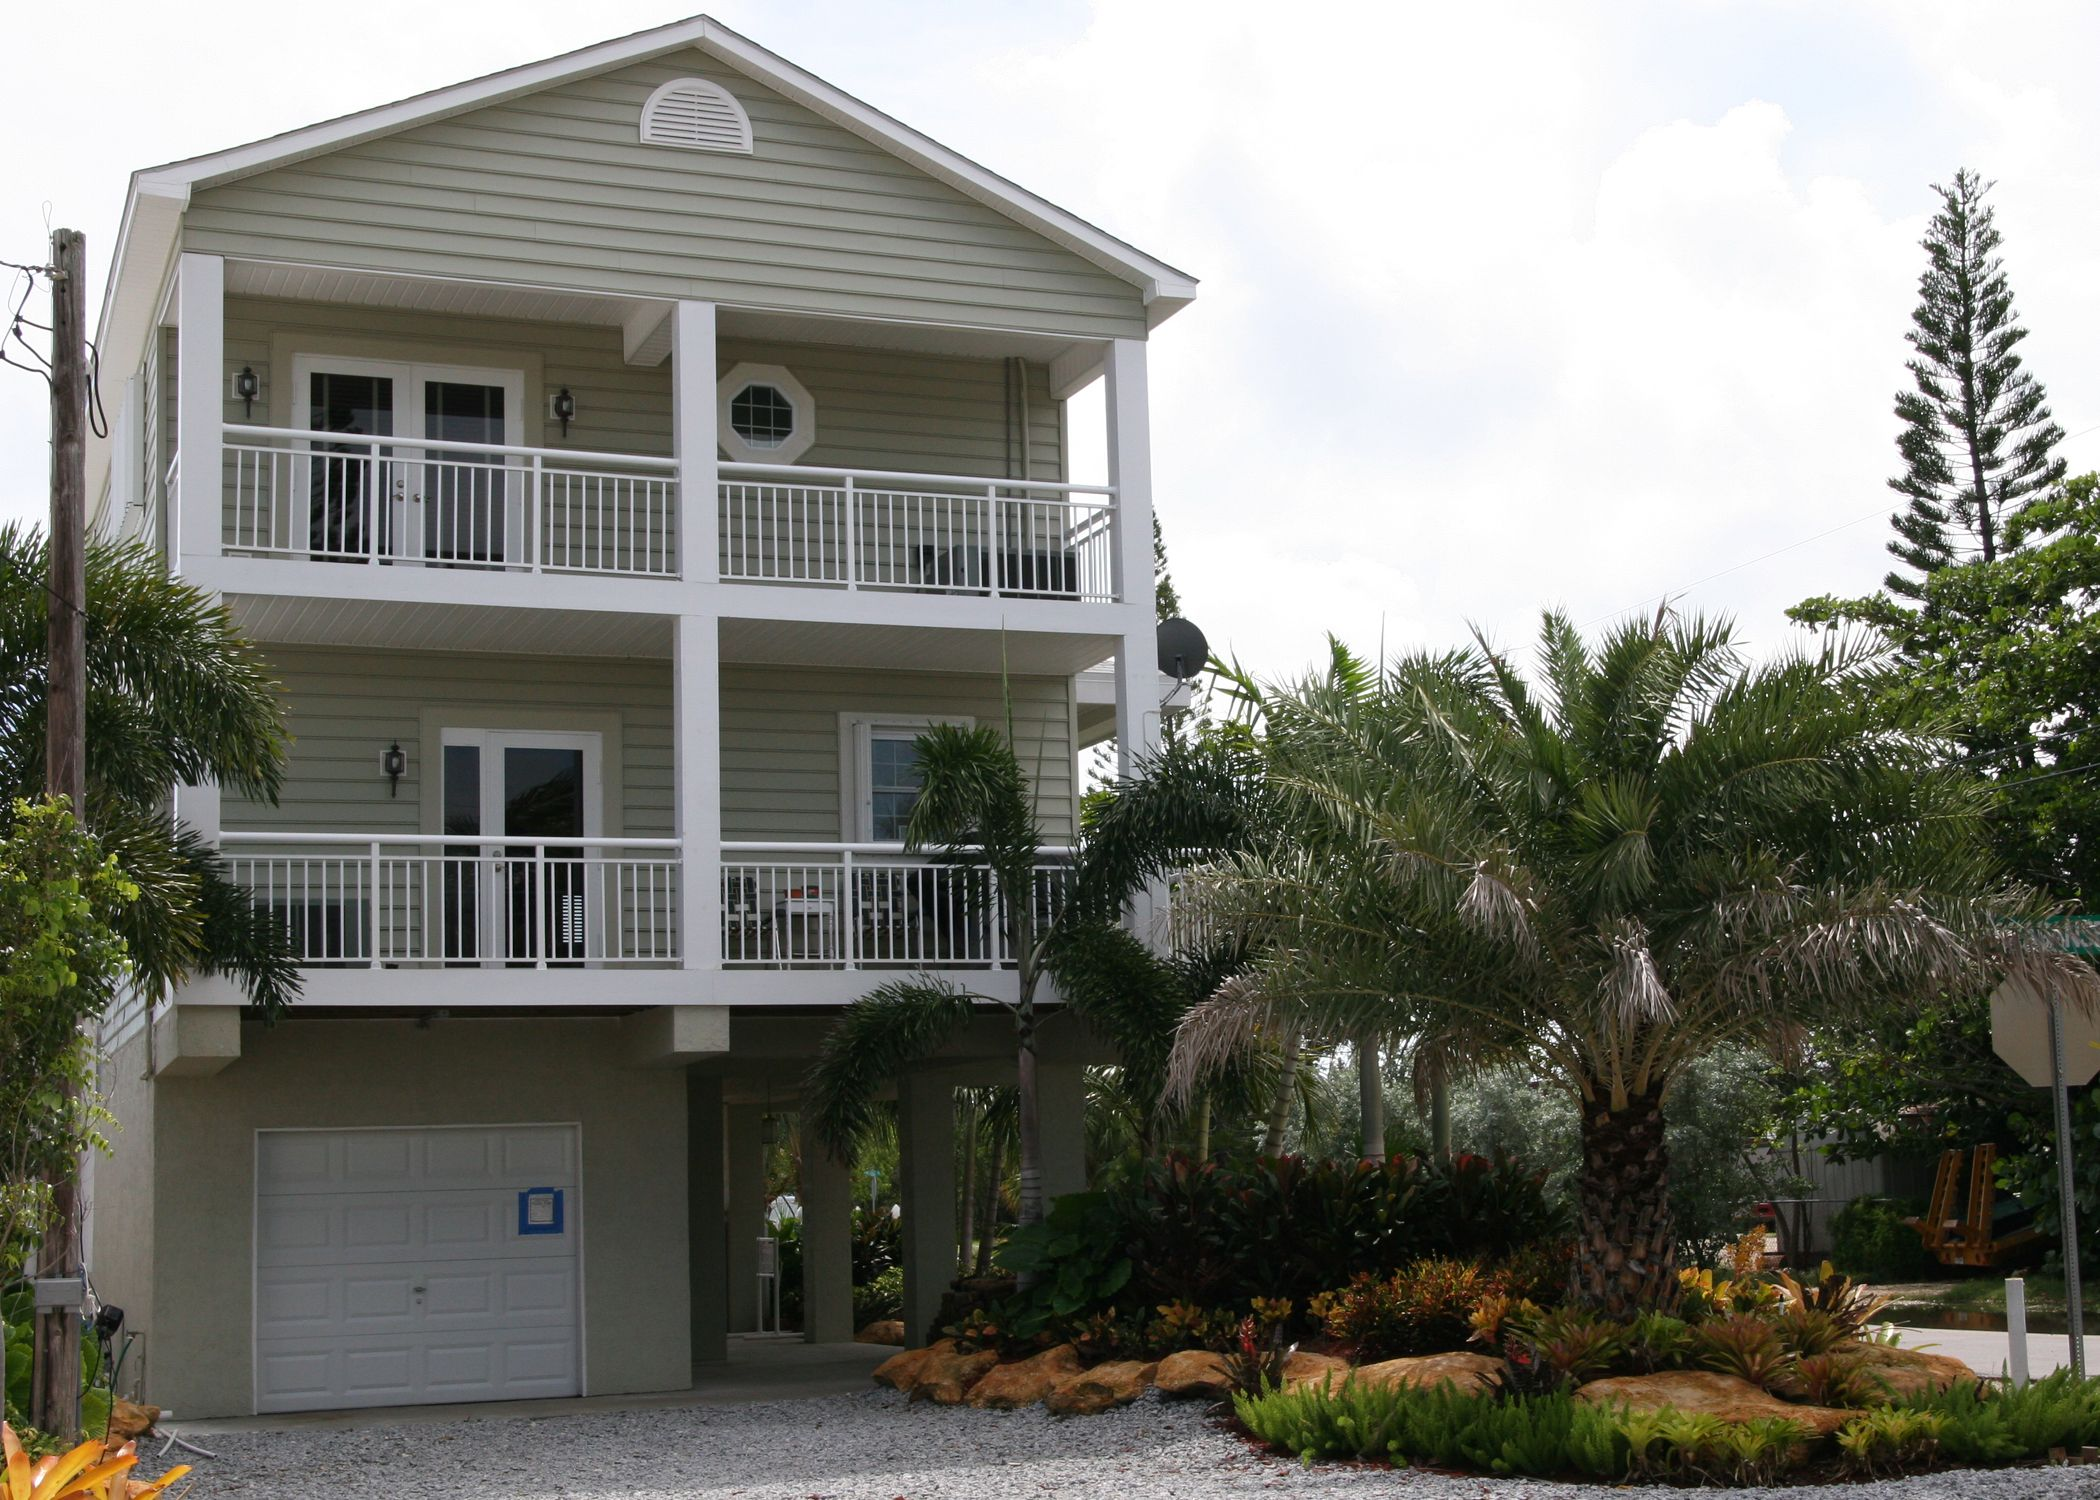 two story coastal modular home design in the florida keys built by two story coastal modular home design in the florida keys built by nationwide homes